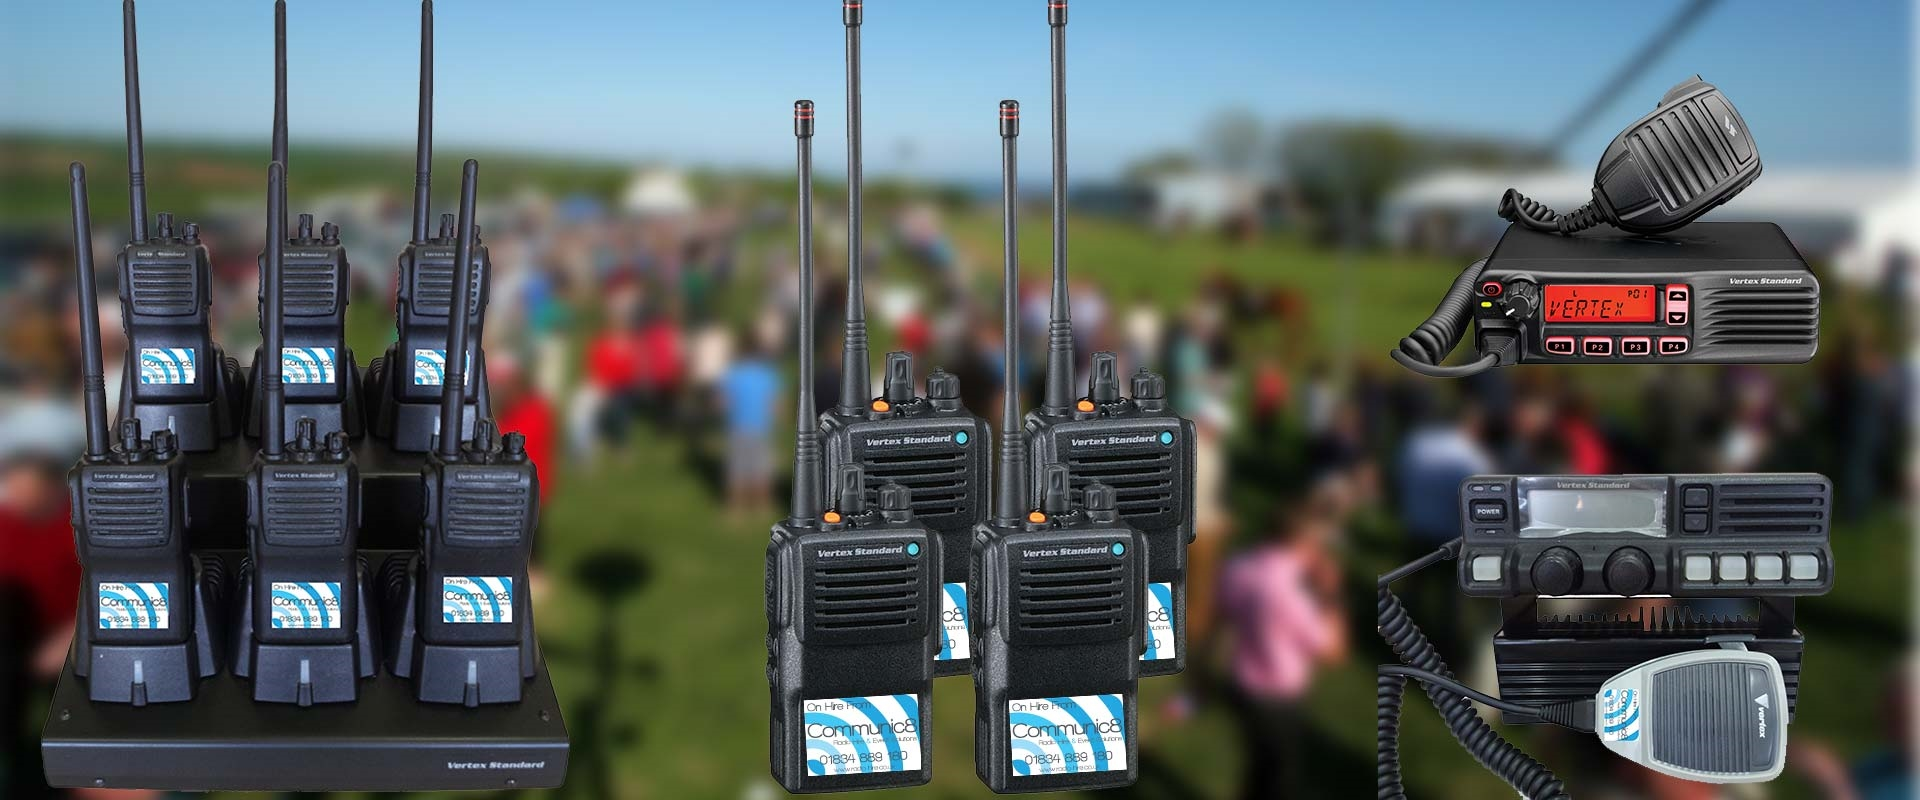 Radio Hire South Wales, Carmarthenshire